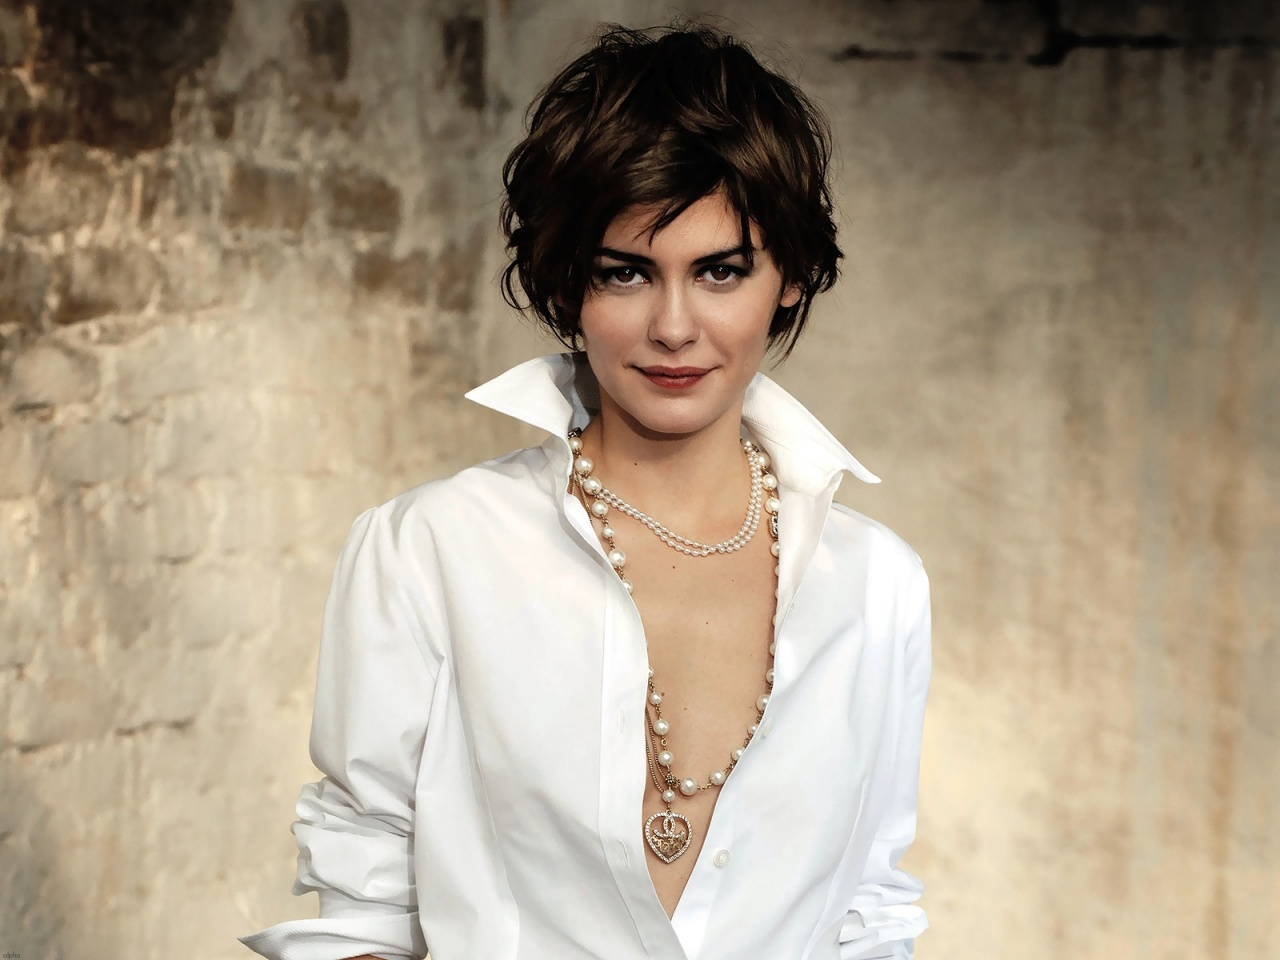 I became a instant fan of Audrey Tatou after seeing Amelie. Audrey is charming, funny, sweet, always has a sharp haircut and her skin is gorgeous!